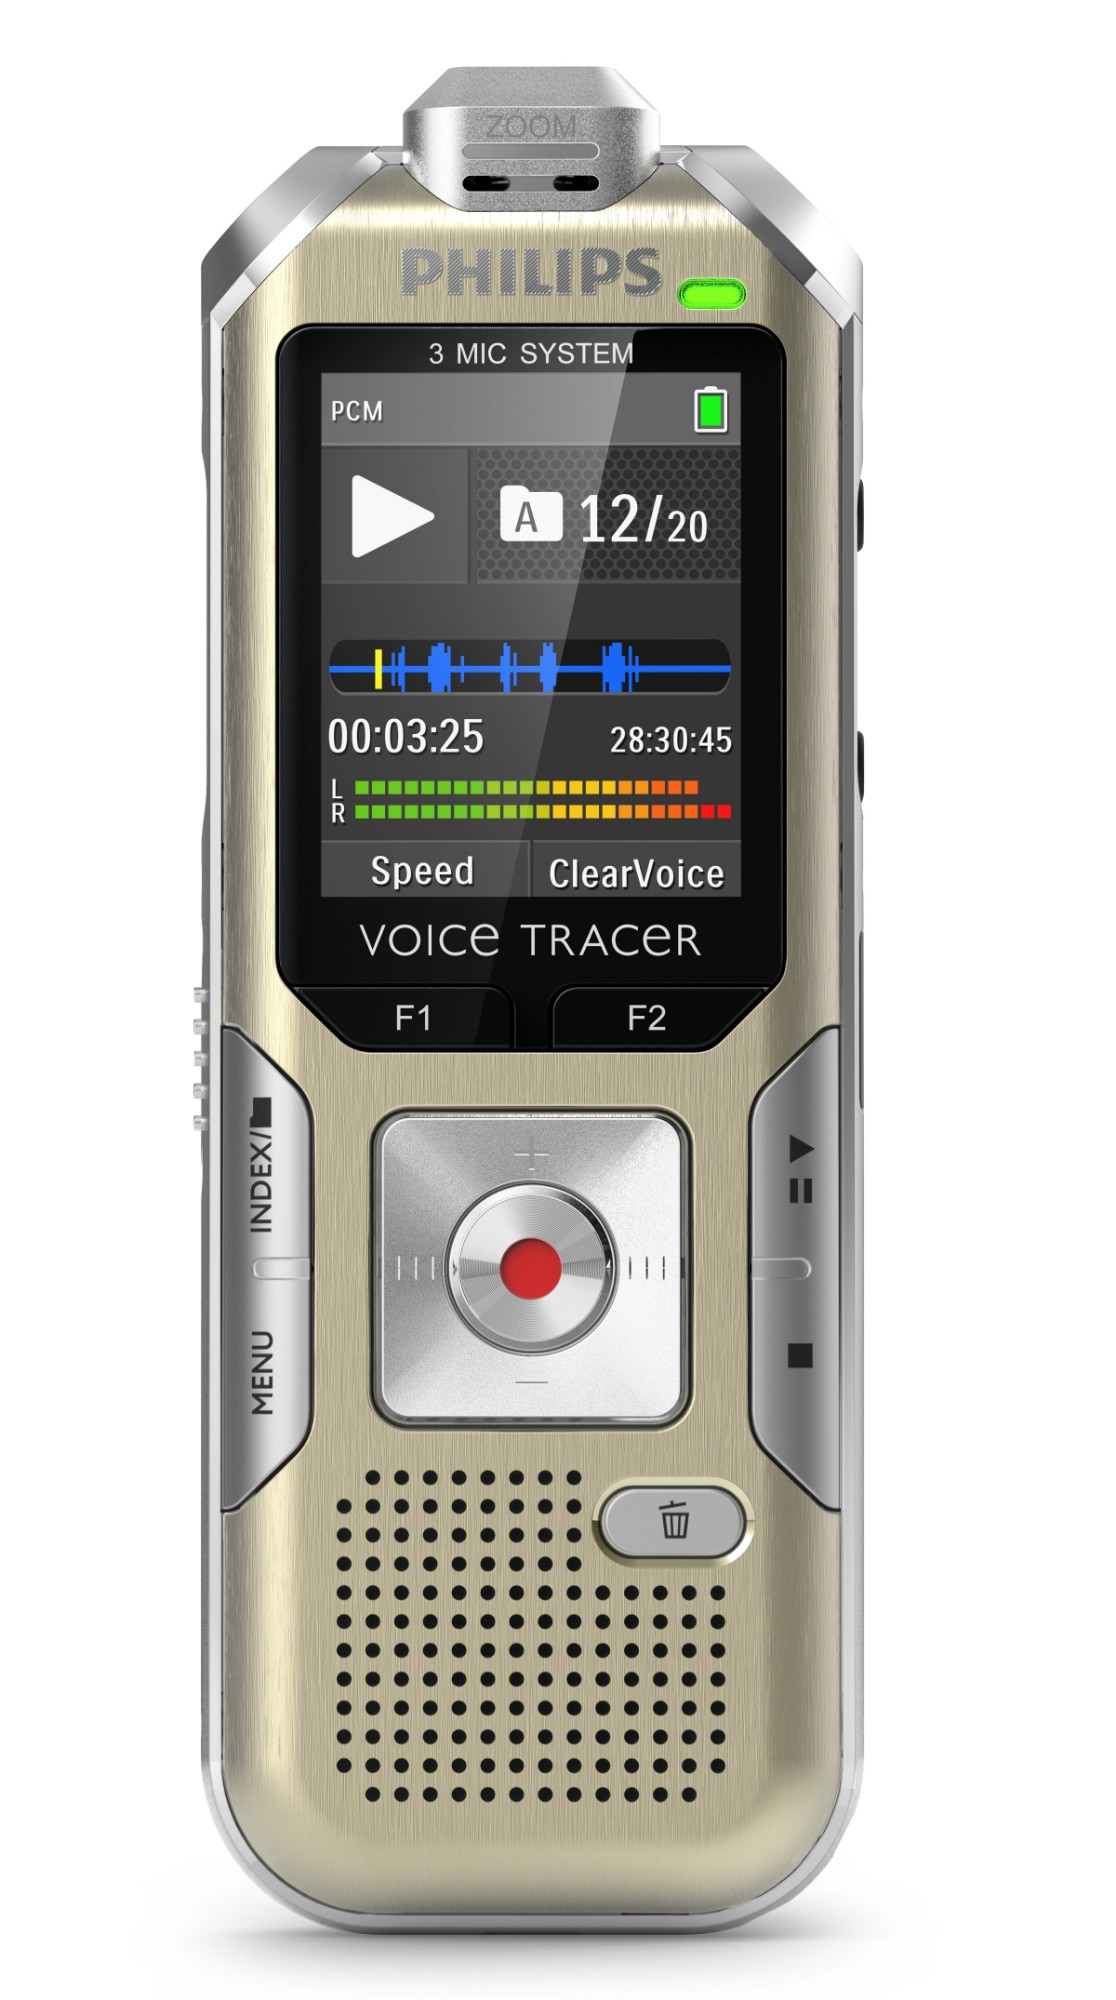 PHILIPS VOICE TRACER DVT6500 DICTAPHONE FLASH CARD SILVER